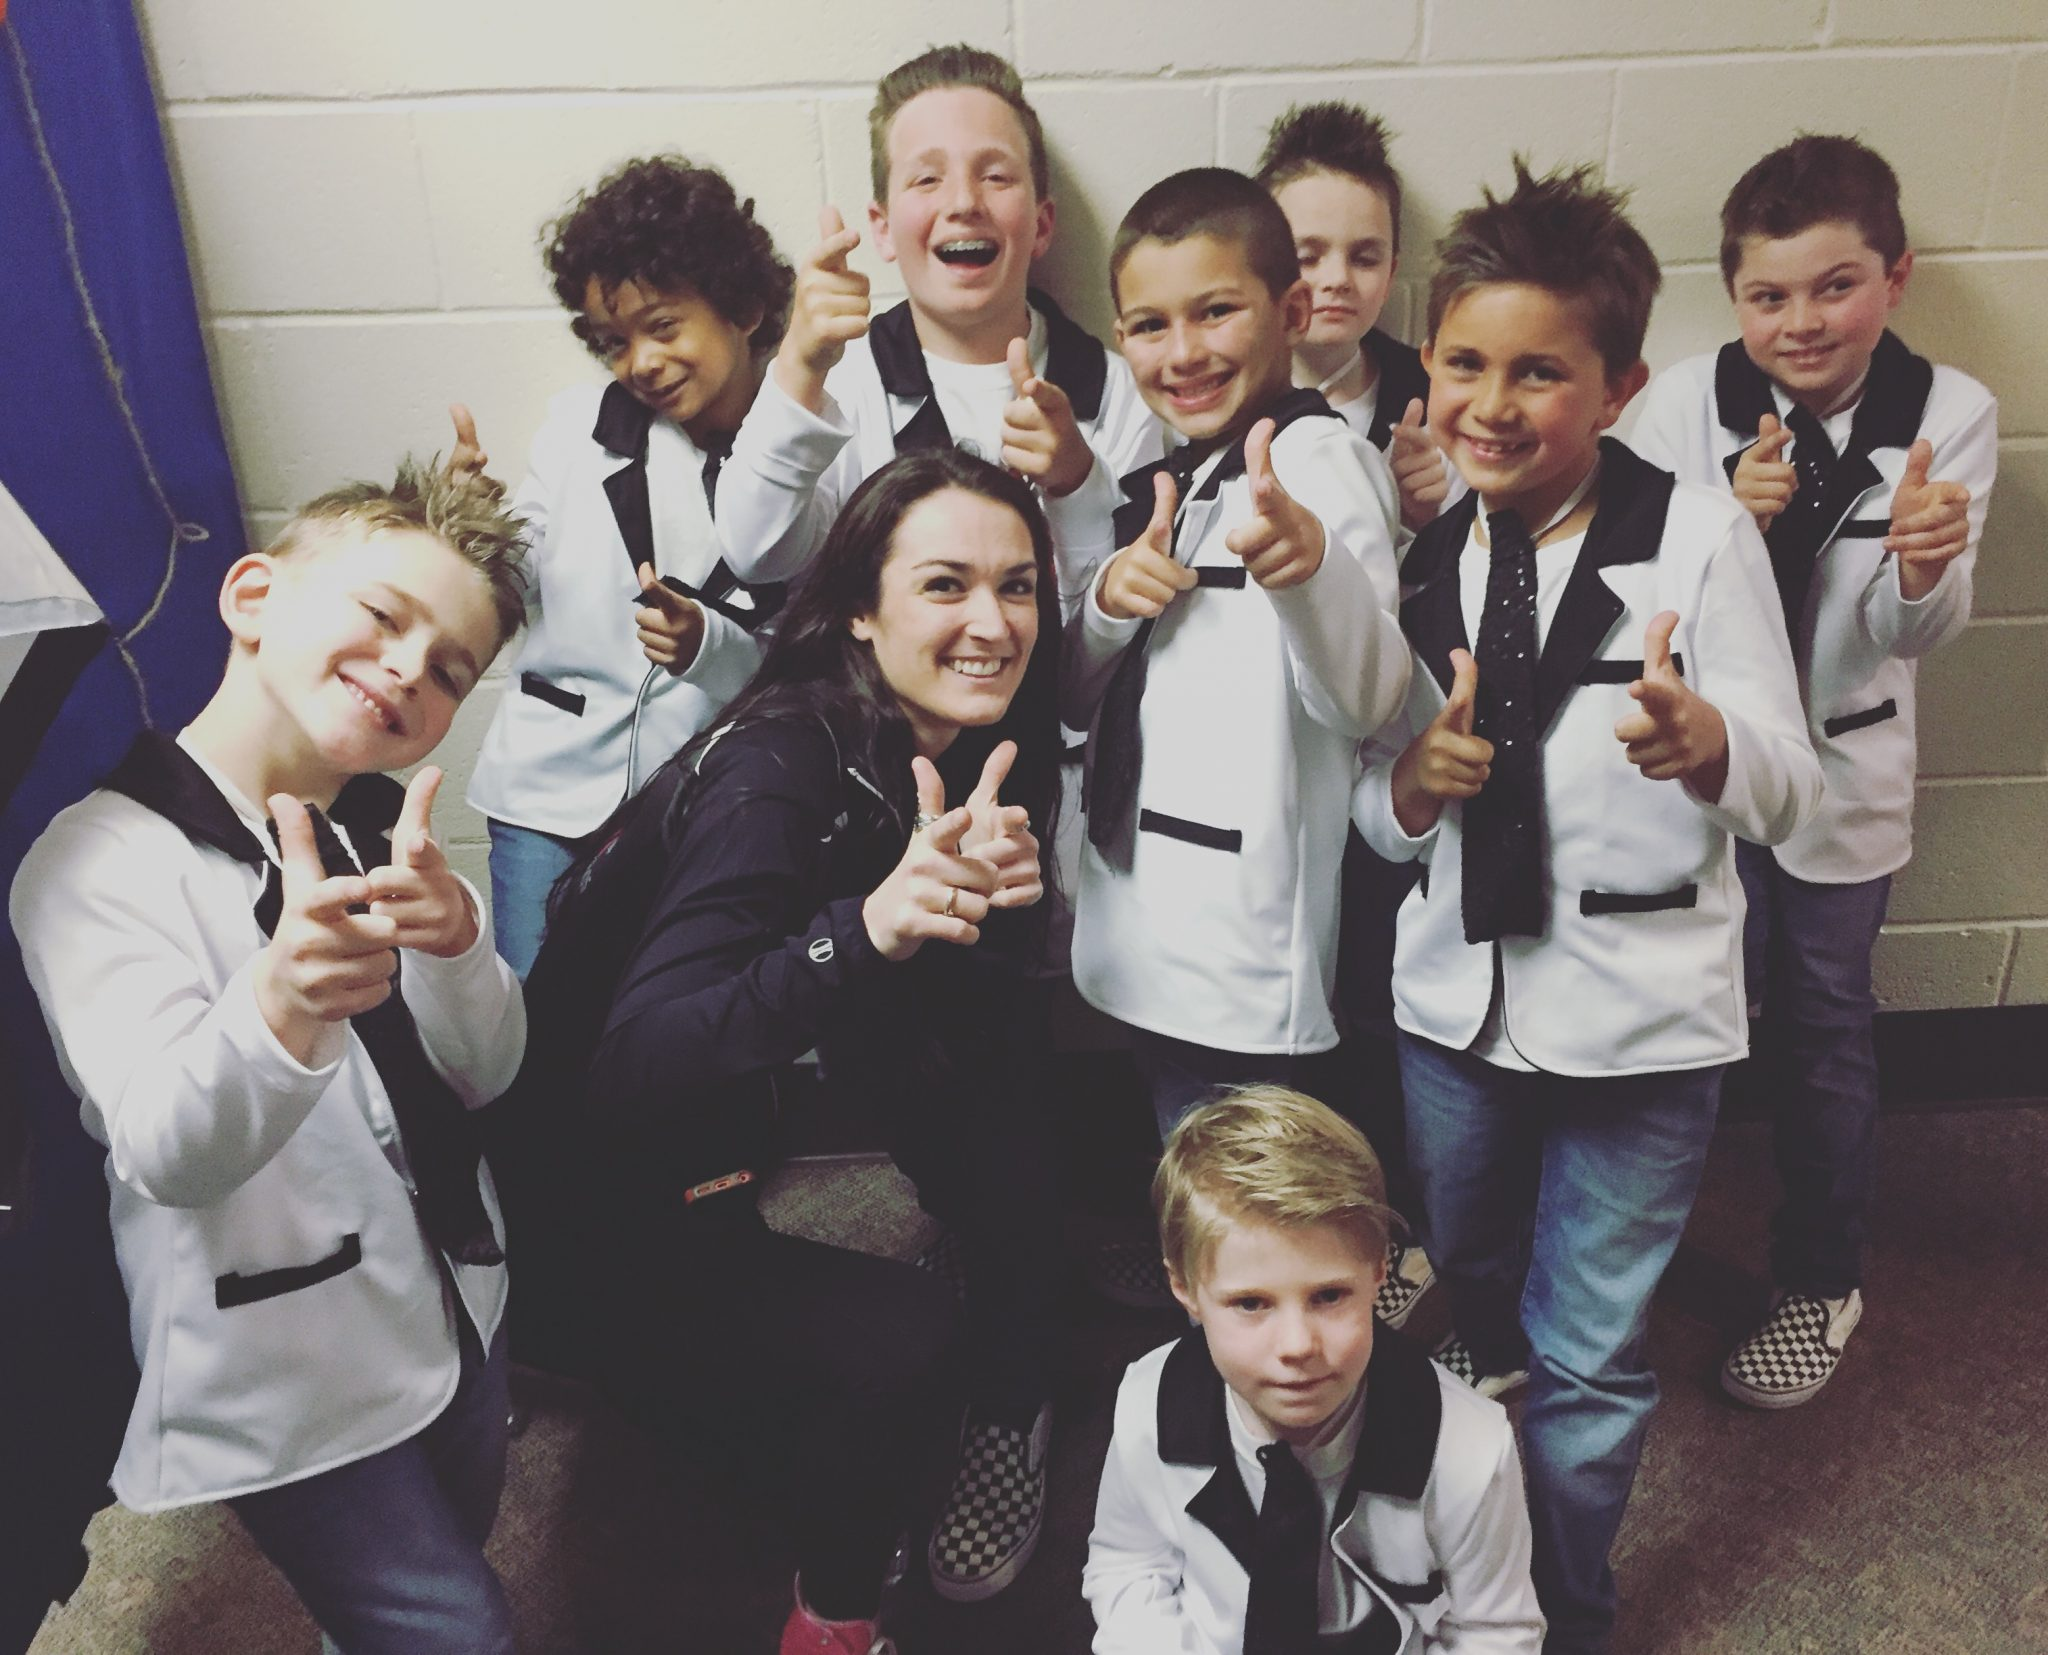 5fbf7aa23fd4 At Kick Dance Studios, we are incredibly proud of our boys dance classes!  We offer boys dance training in every dance style in a fun, supportive  atmosphere.